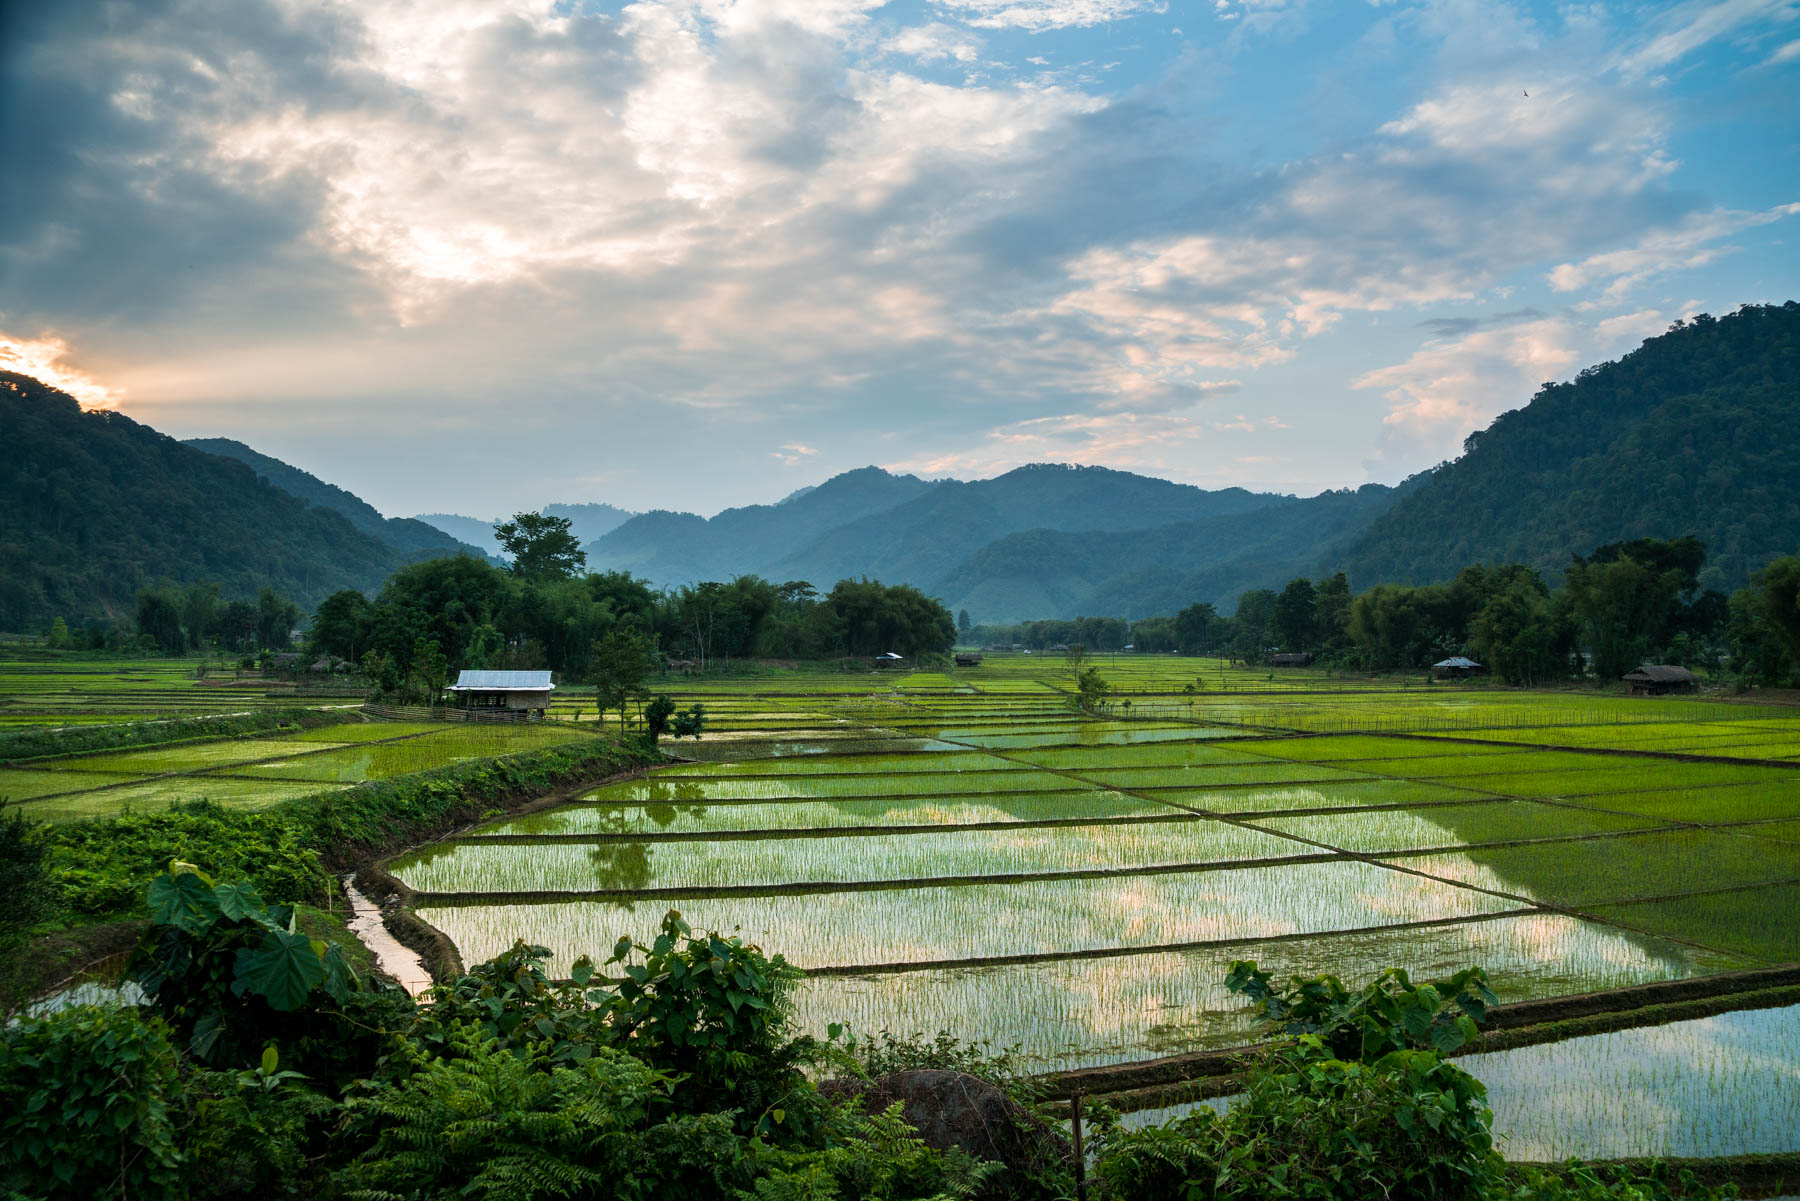 Backpacking Arunachal Pradesh travel guide - Sunset over rice paddies in Along (Aalo) - Lost With Purpose